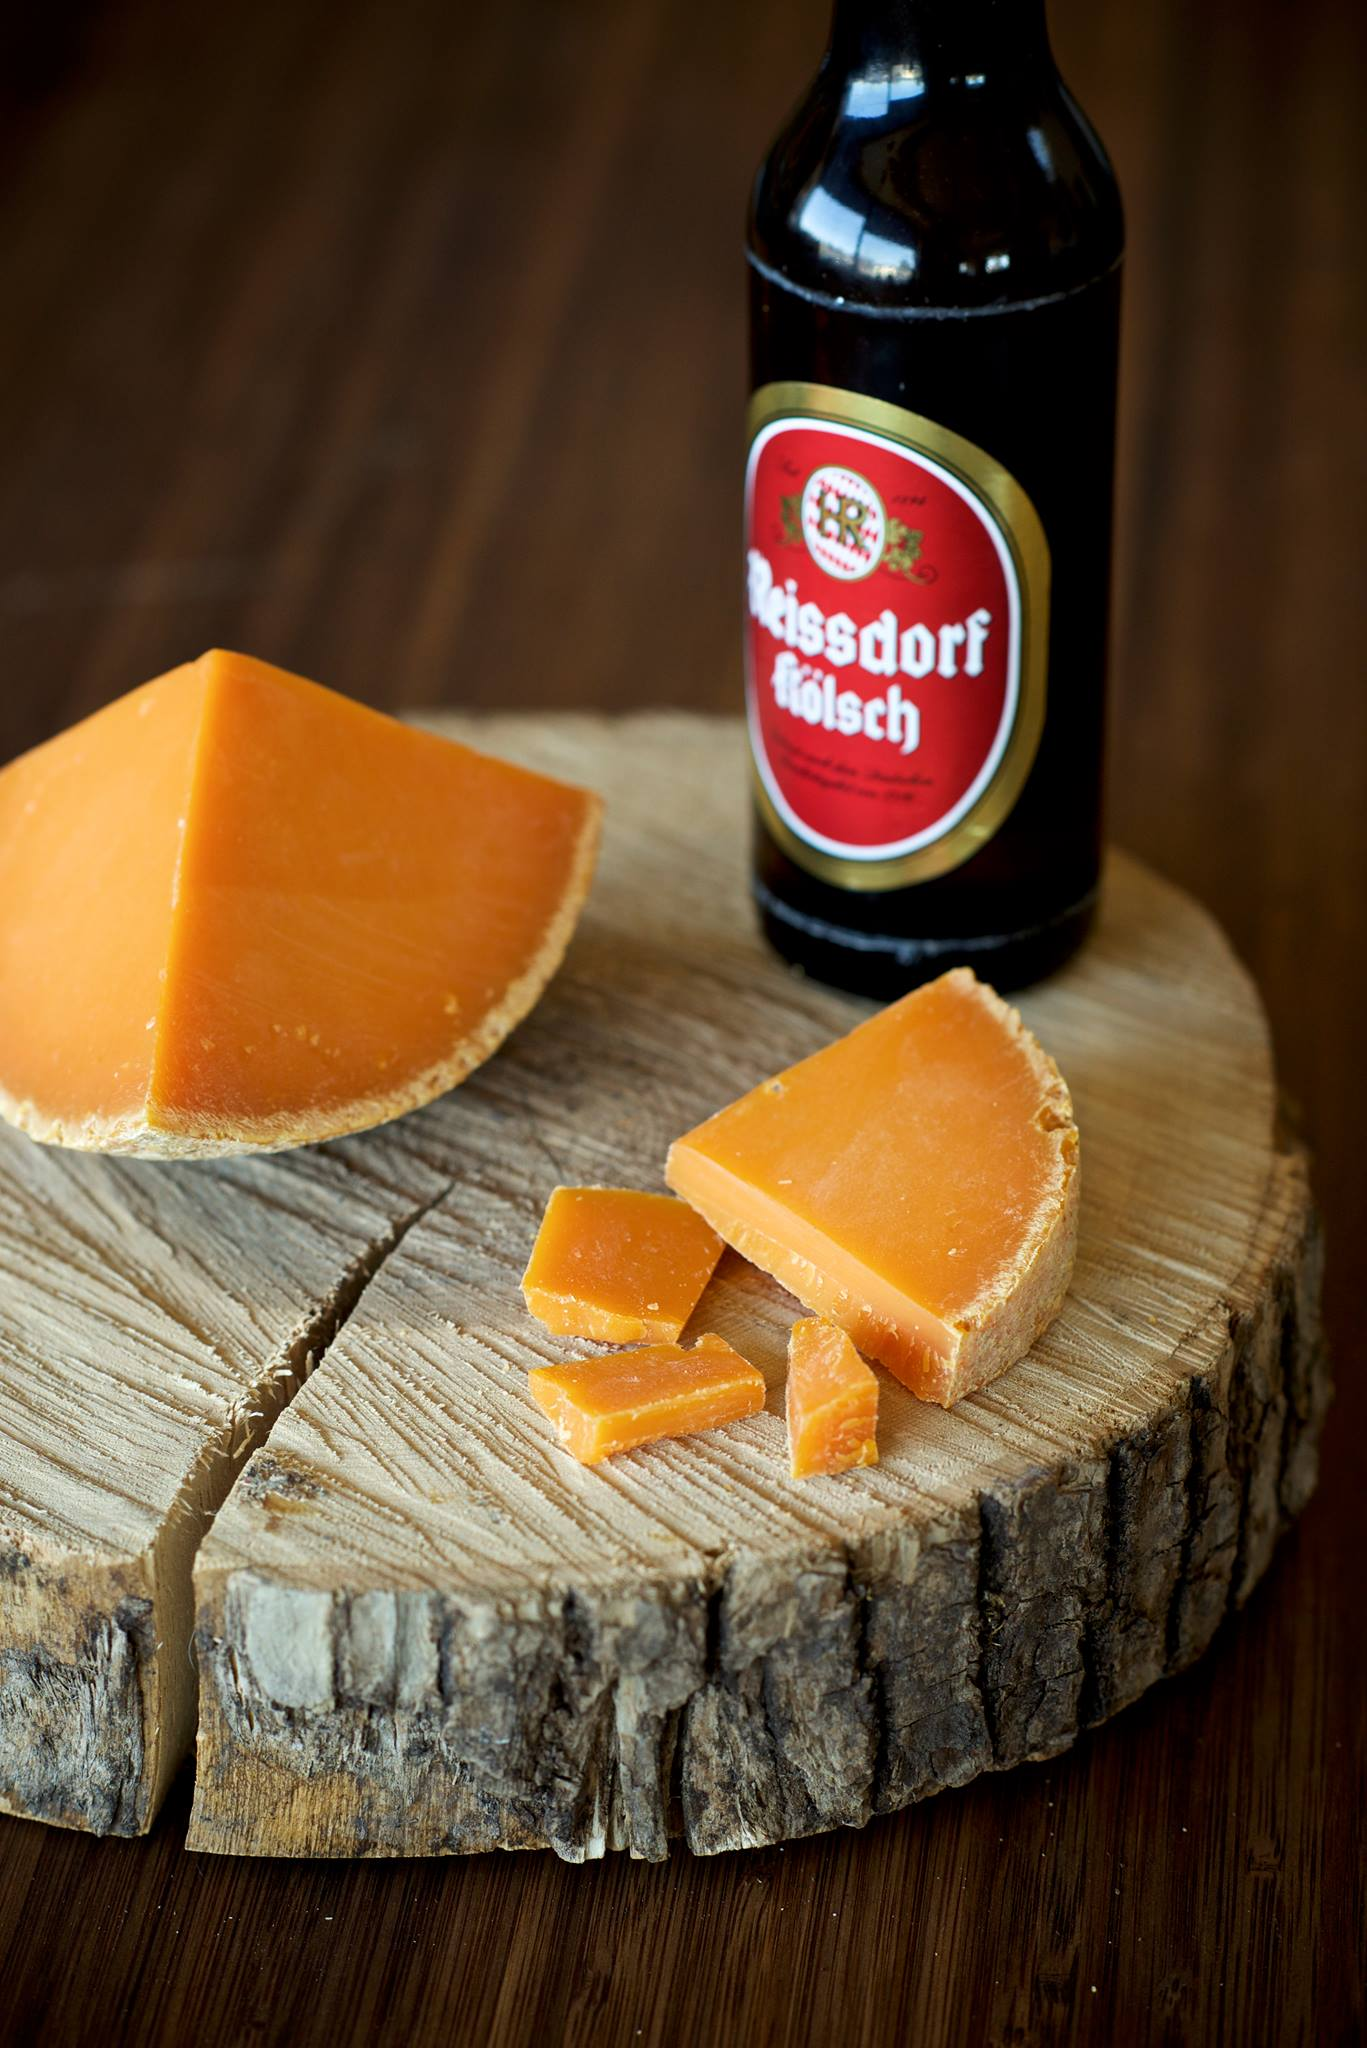 image from the book Cheese Beer Wine Cider - A Field Guide to 75 Perfect Pairings courtesy of David L. Reamer